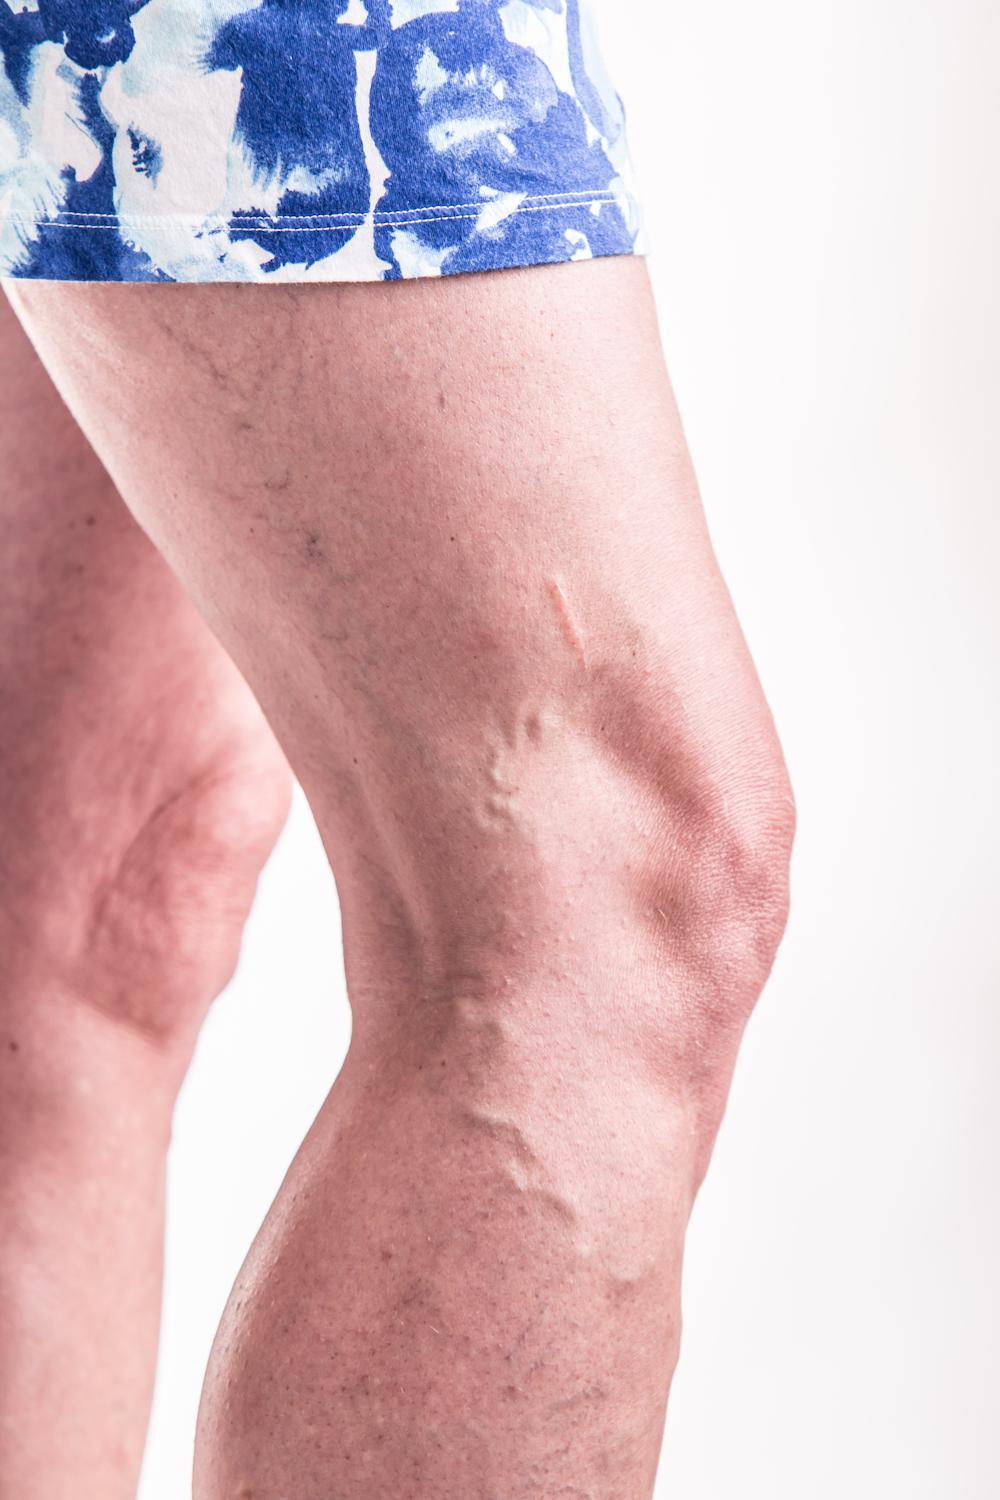 Why Some People Get Varicose Veins and Others Don't